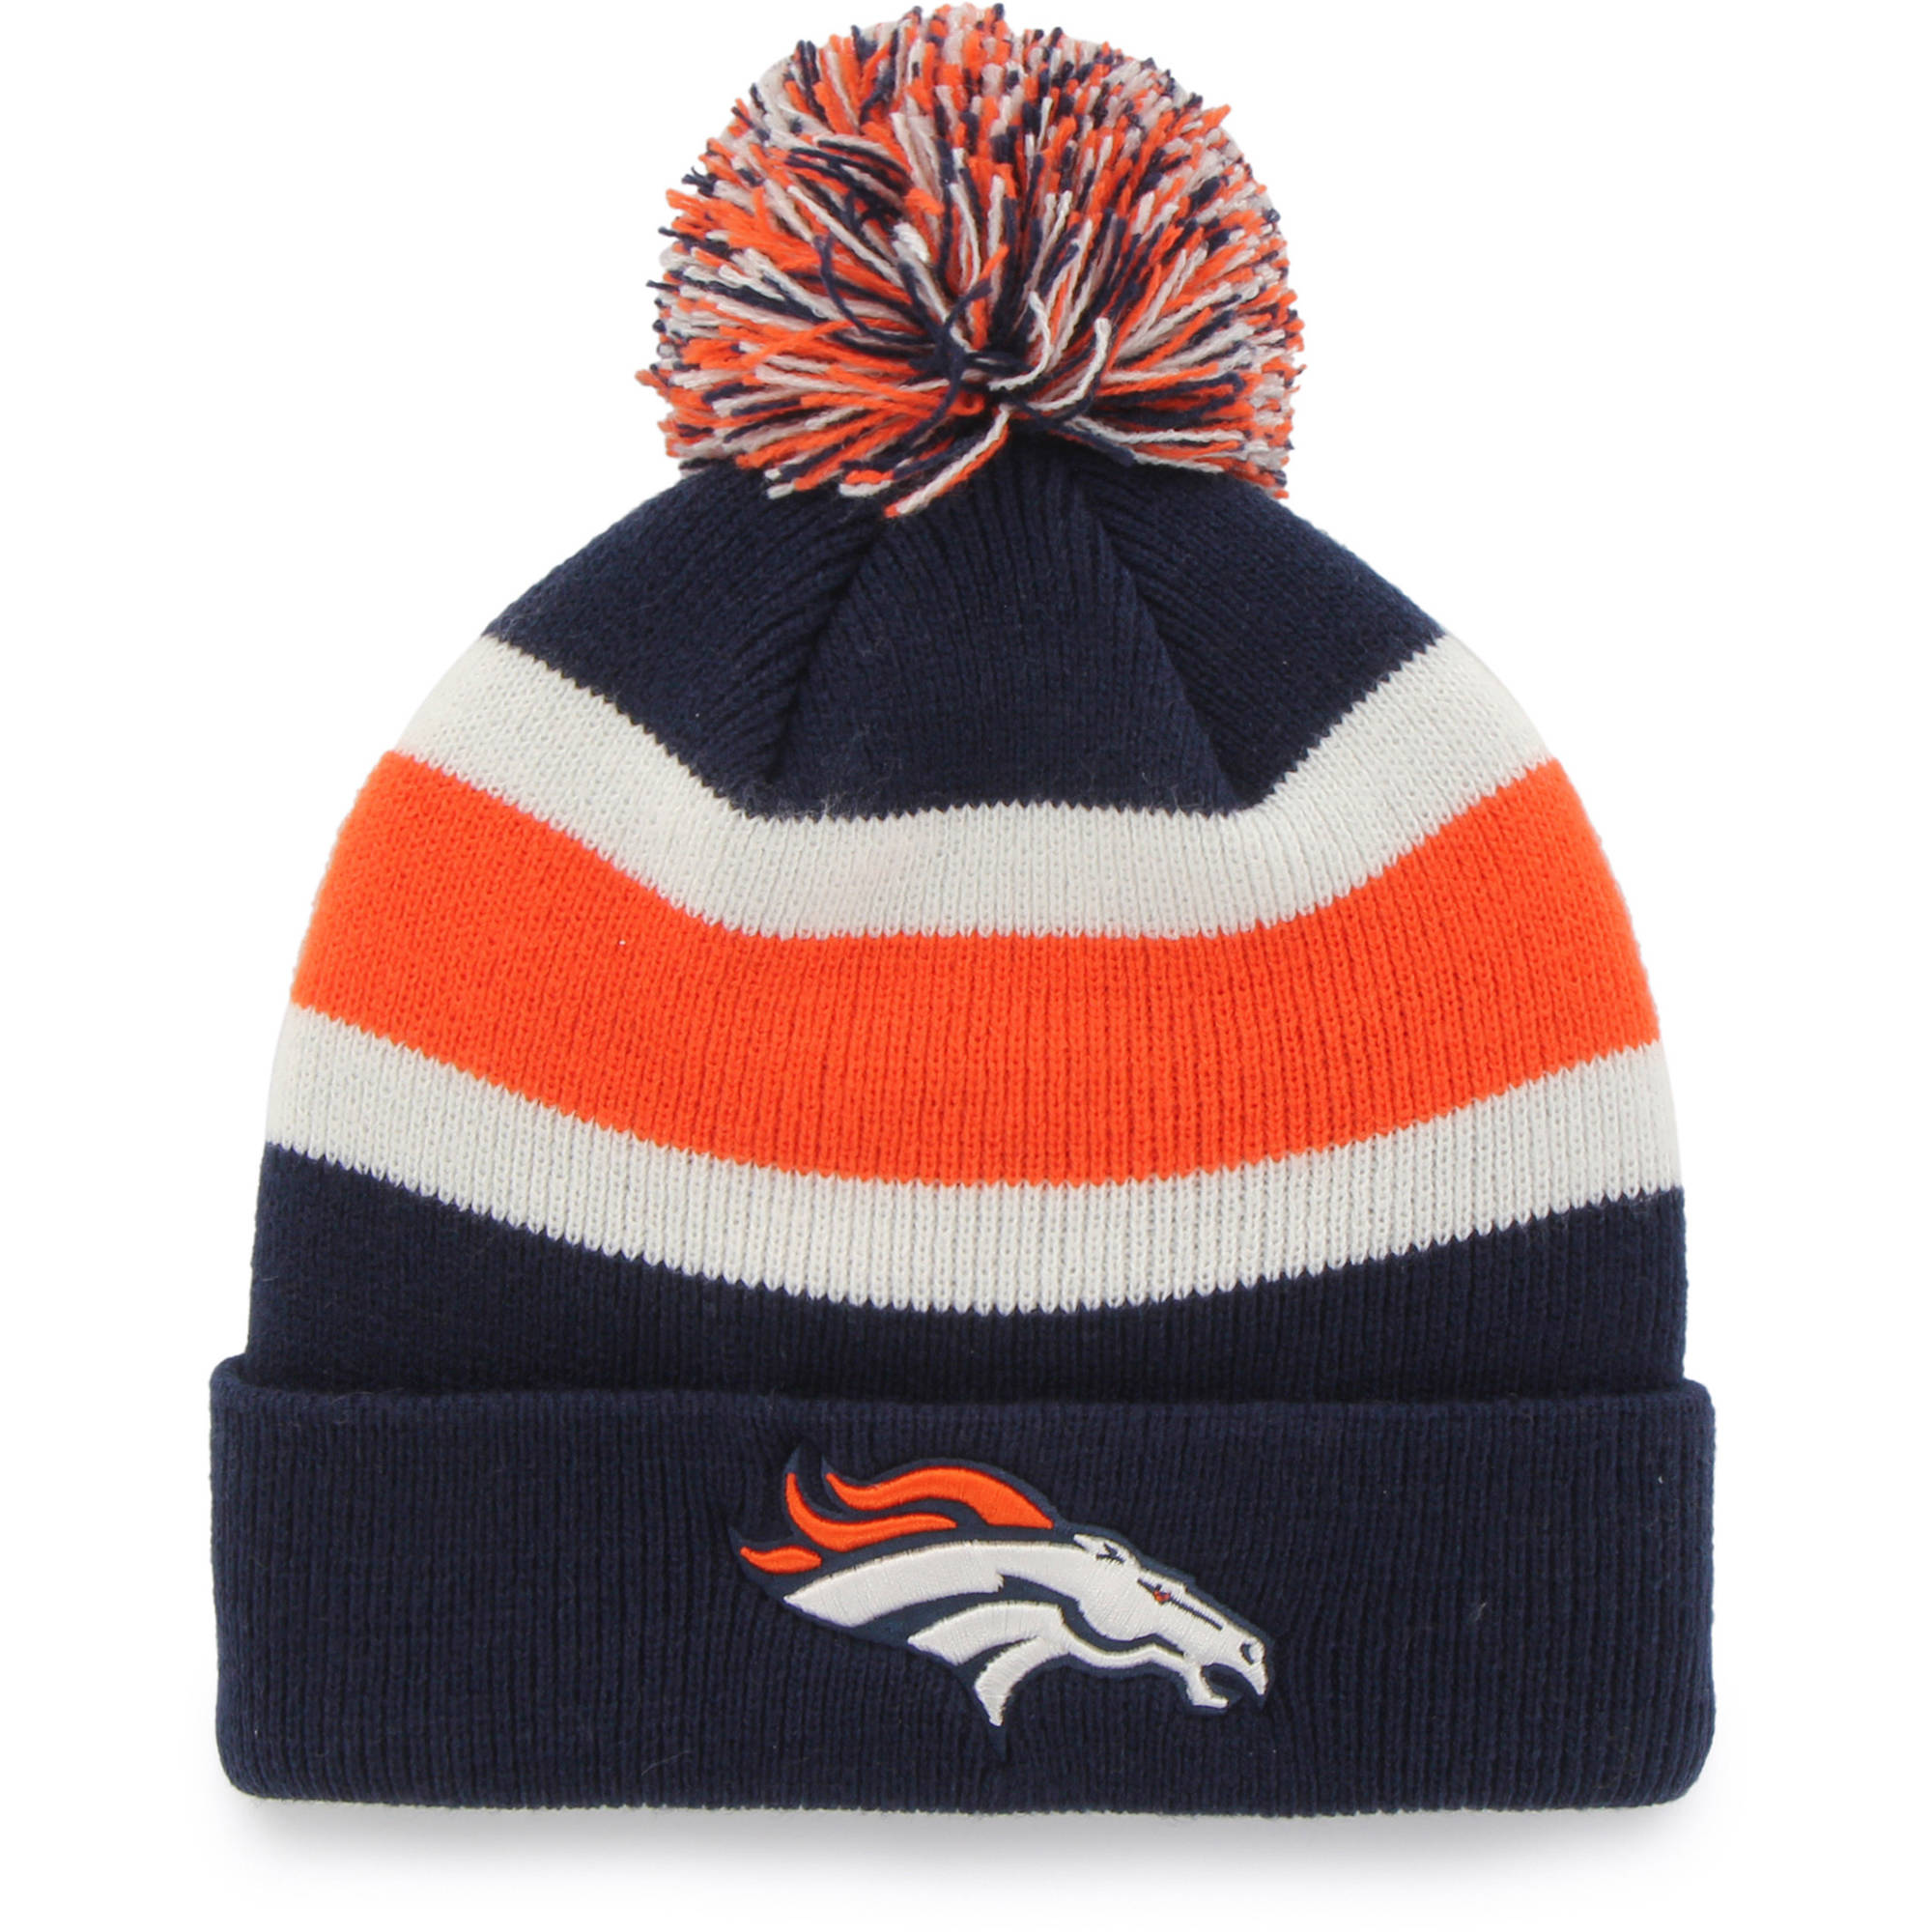 Fan Favorites F-MBRKW10ACE-LN OSF NFL Denver Broncos Breakaway Beanie with Pom - One Size